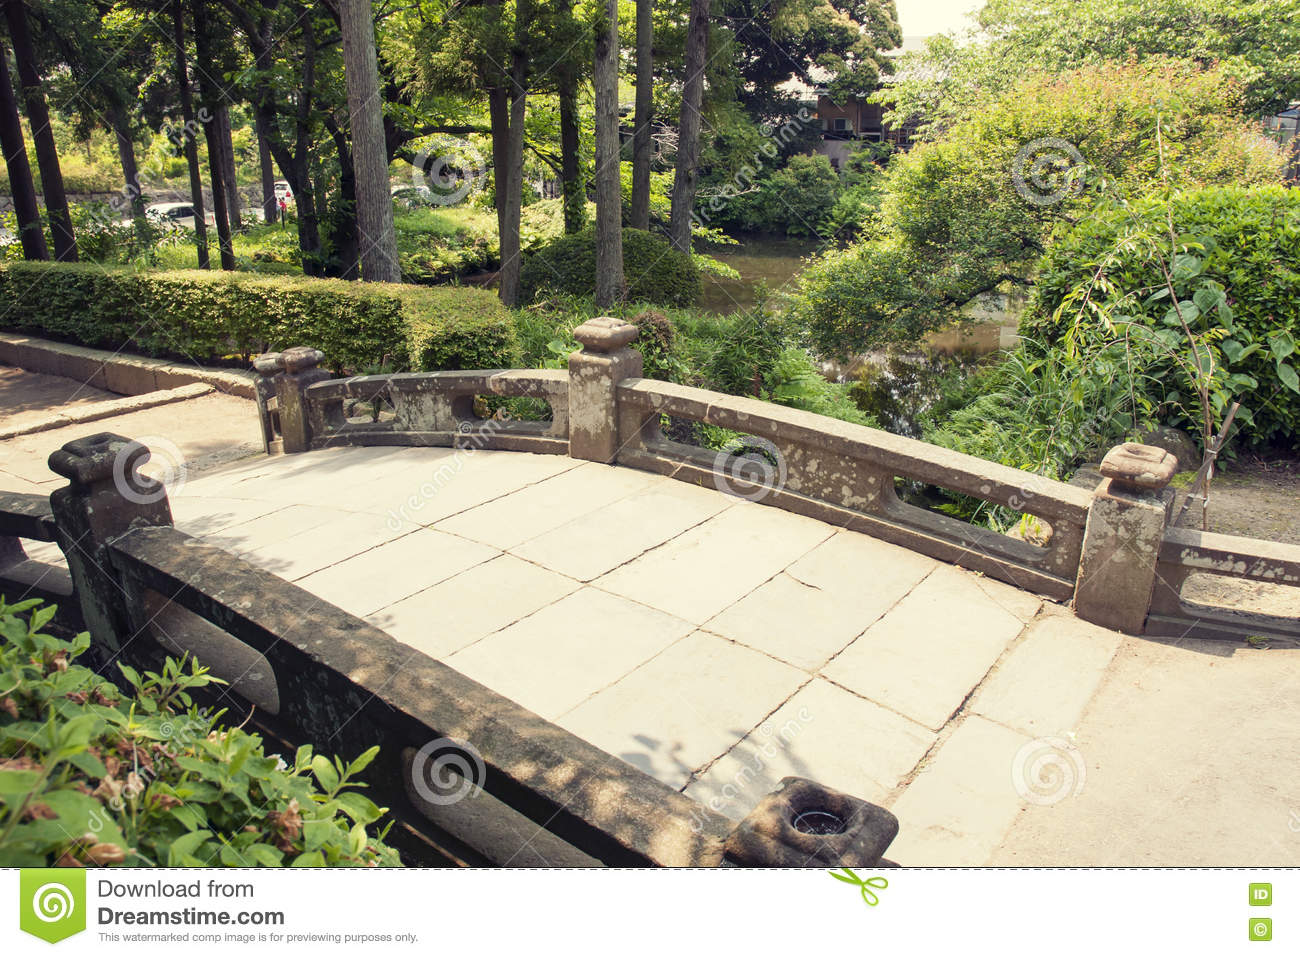 Japanese Garden Stone Bridge japanese stone bridge stock photo - image: 73690138